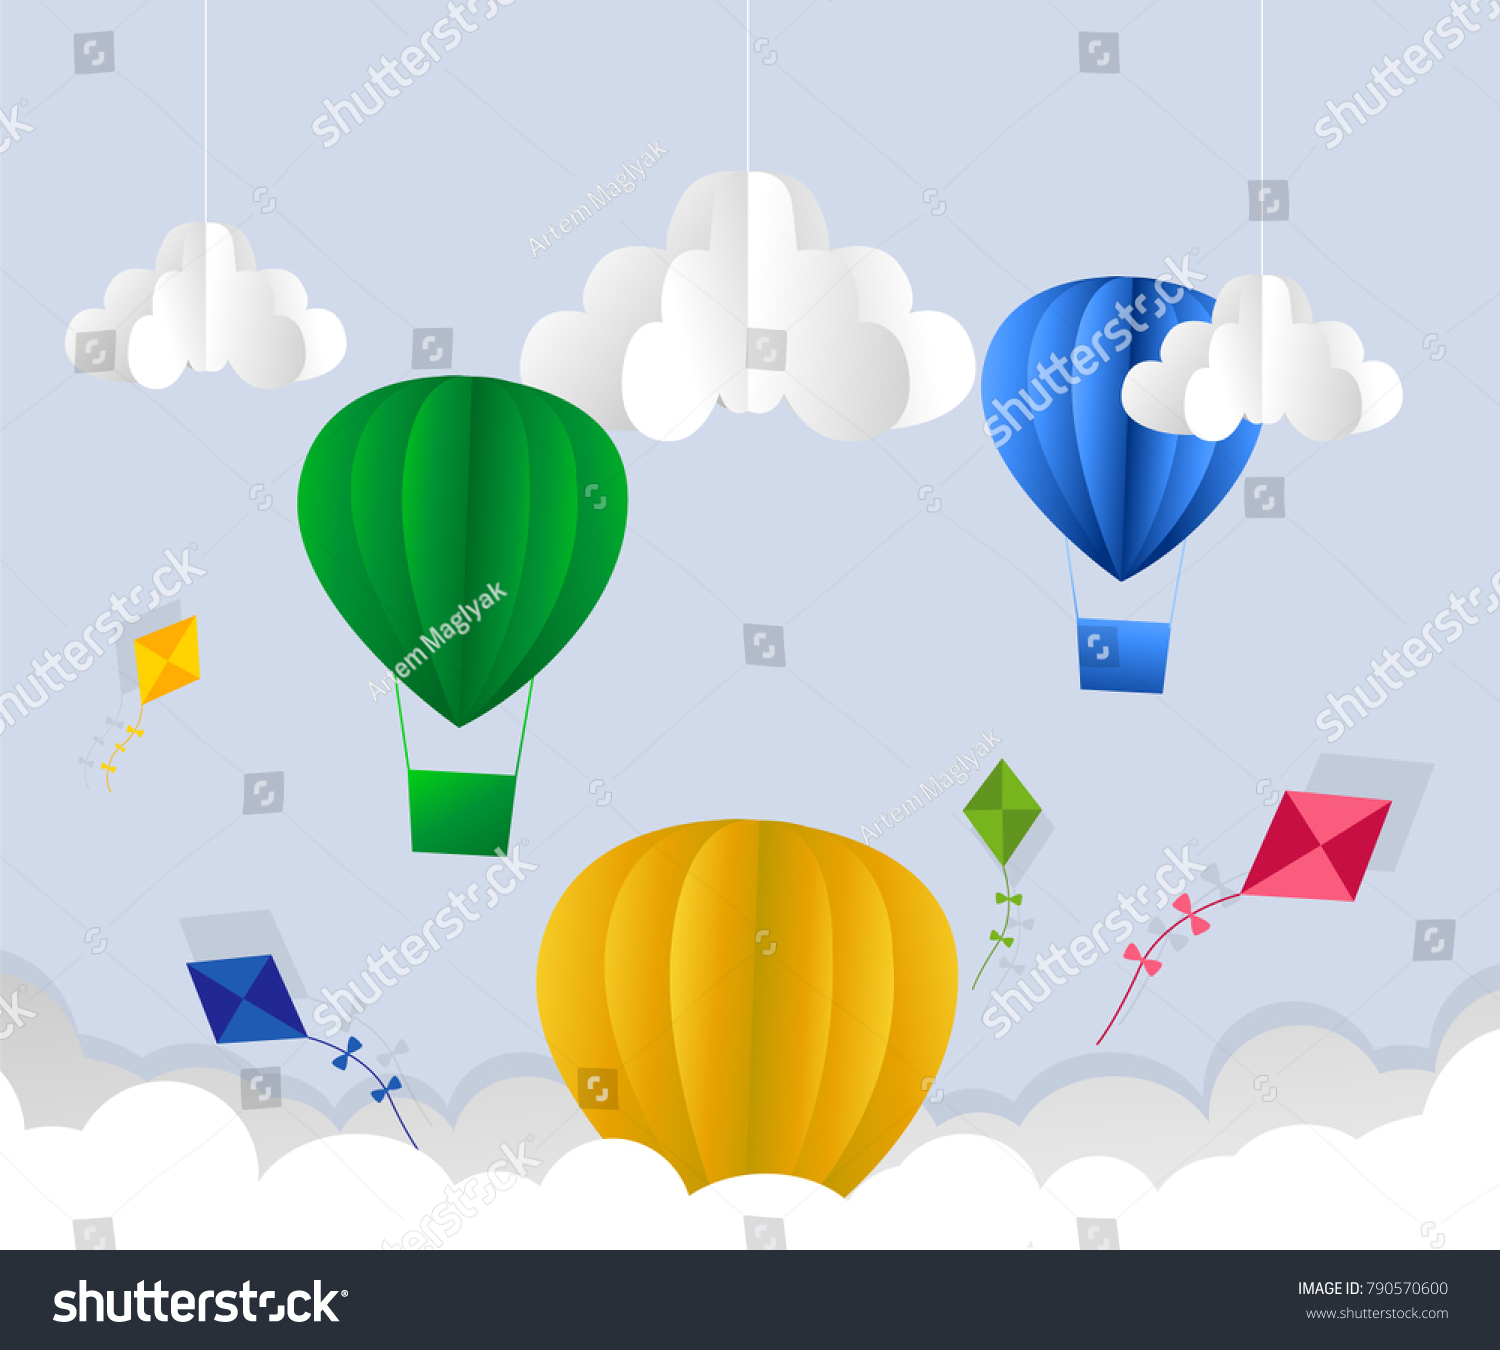 Illustration clouds suns hot air balloon stock vector 790570600 illustration of clouds suns and hot air balloon origami flying on the sky bringing on jeuxipadfo Choice Image